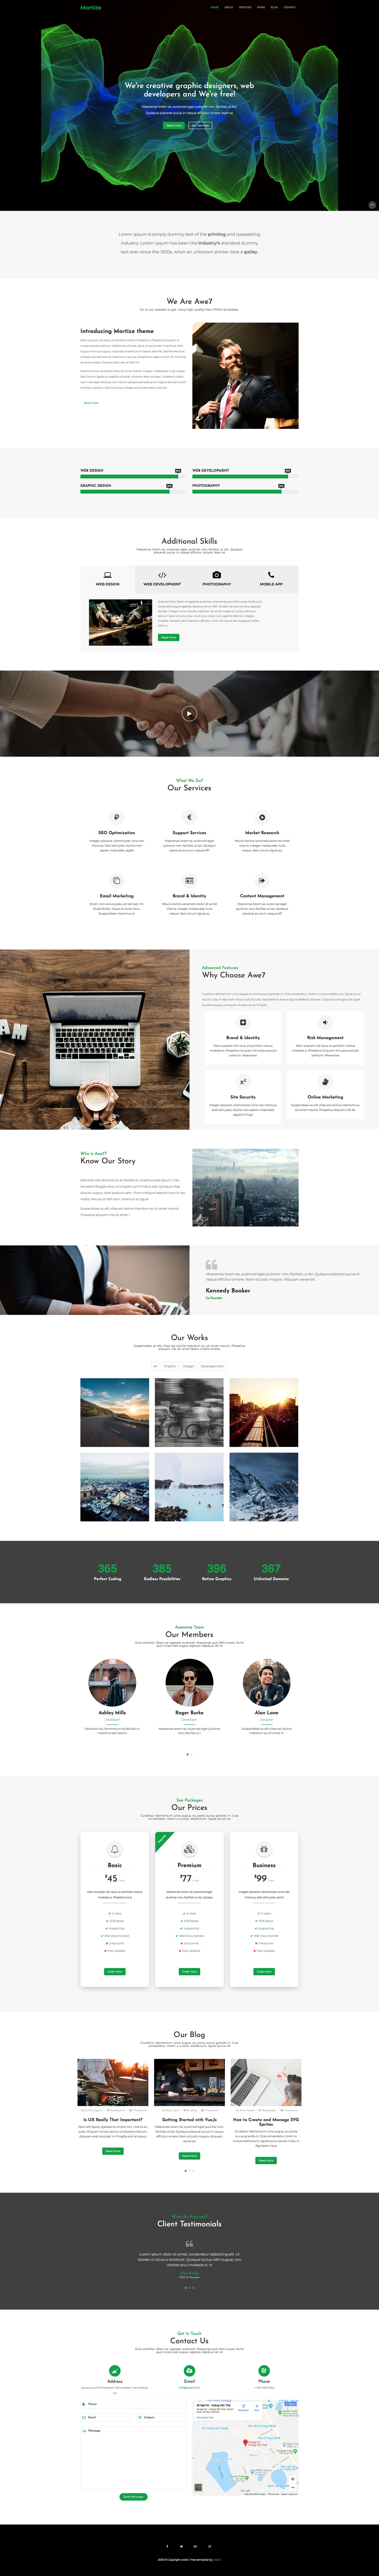 Mortize HTML template is a stunning free HTML5 Business template that can work for any corporation, creative agency or all types of business website. Mortize HTML template is a beautiful, well-crafted, modern and clean HTML Business template. It is retina ready and comes with Bootstrap CSS Grid System.